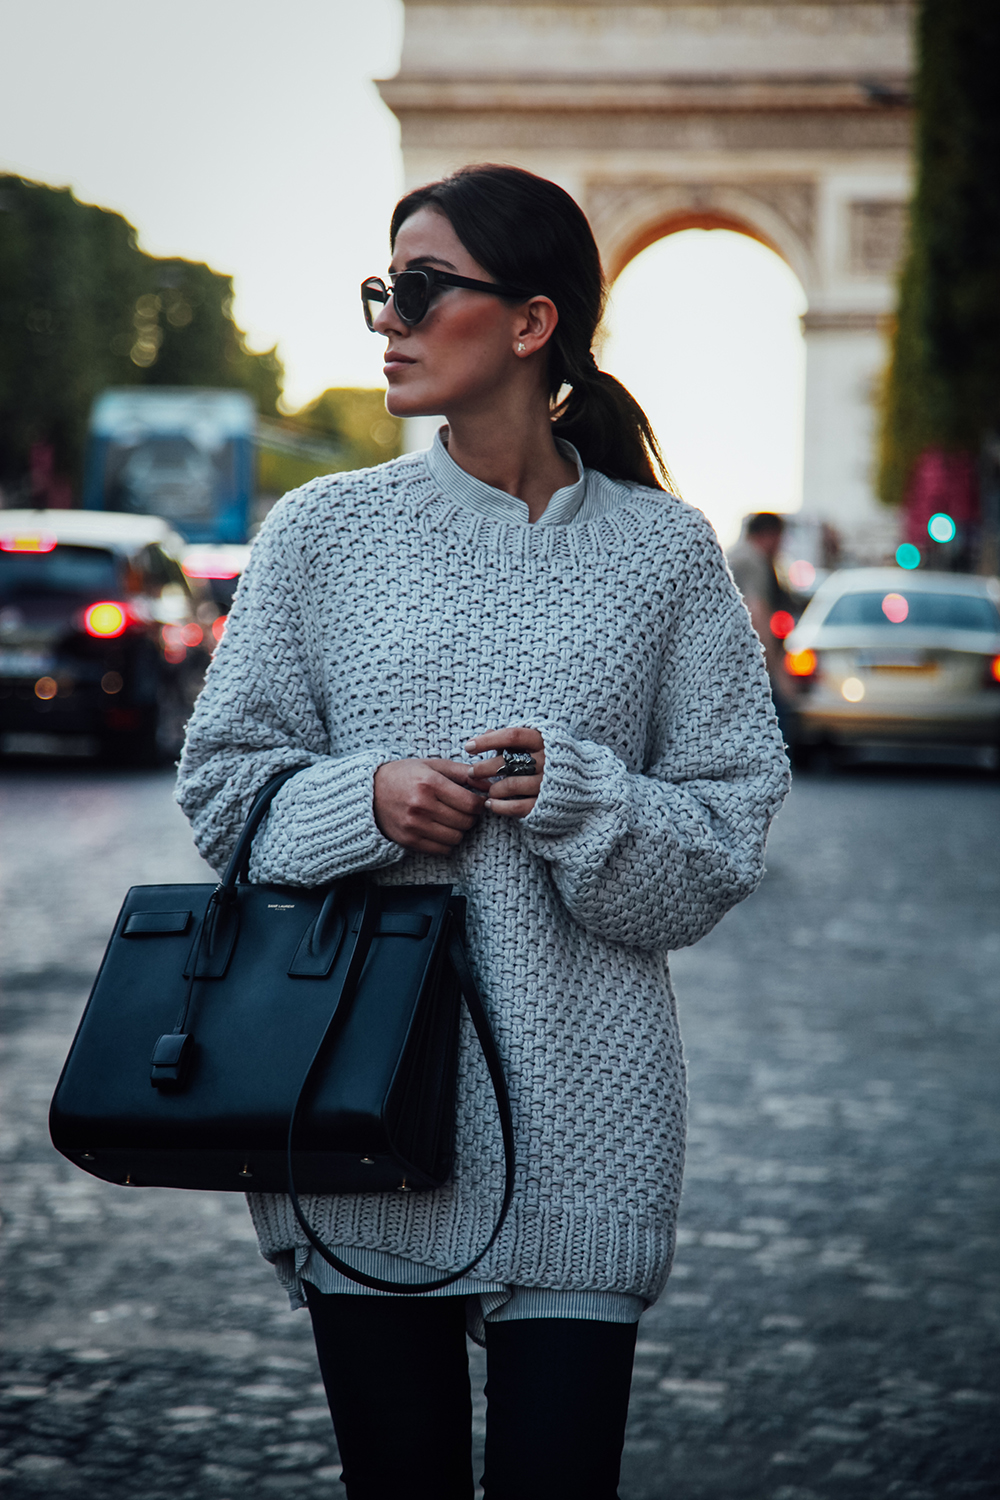 Sylvia Haghjoo wears a cute oversized knit pullover with a striped shirt and simple black jeans. Sweater: La Roca Village, Jewlery: Georg Jensen, Shades: Dior, Bag: Saint Laurent, Blouse: Tibi.